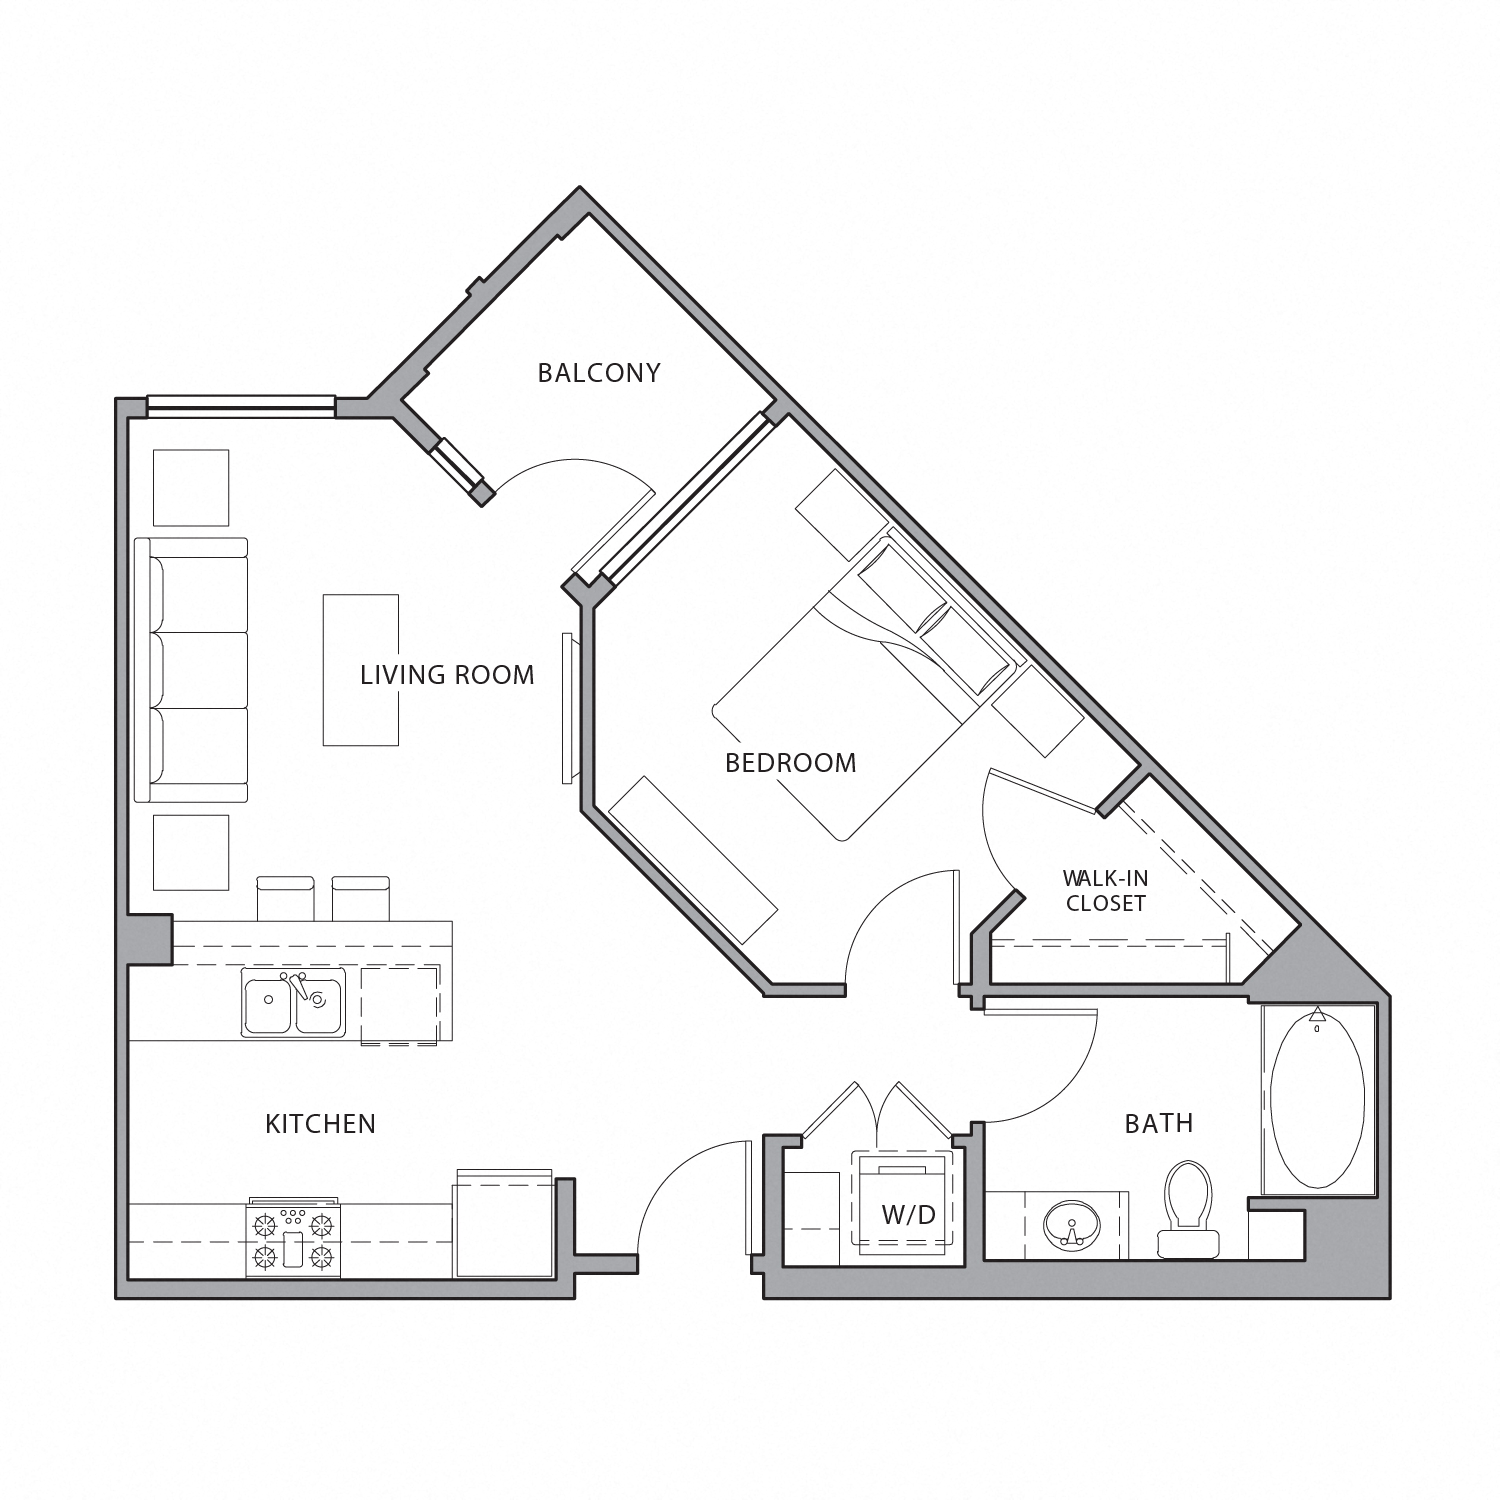 Floor plan diagram. One bedroom, one bathroom, an open kitchen and living area, and a balcony.